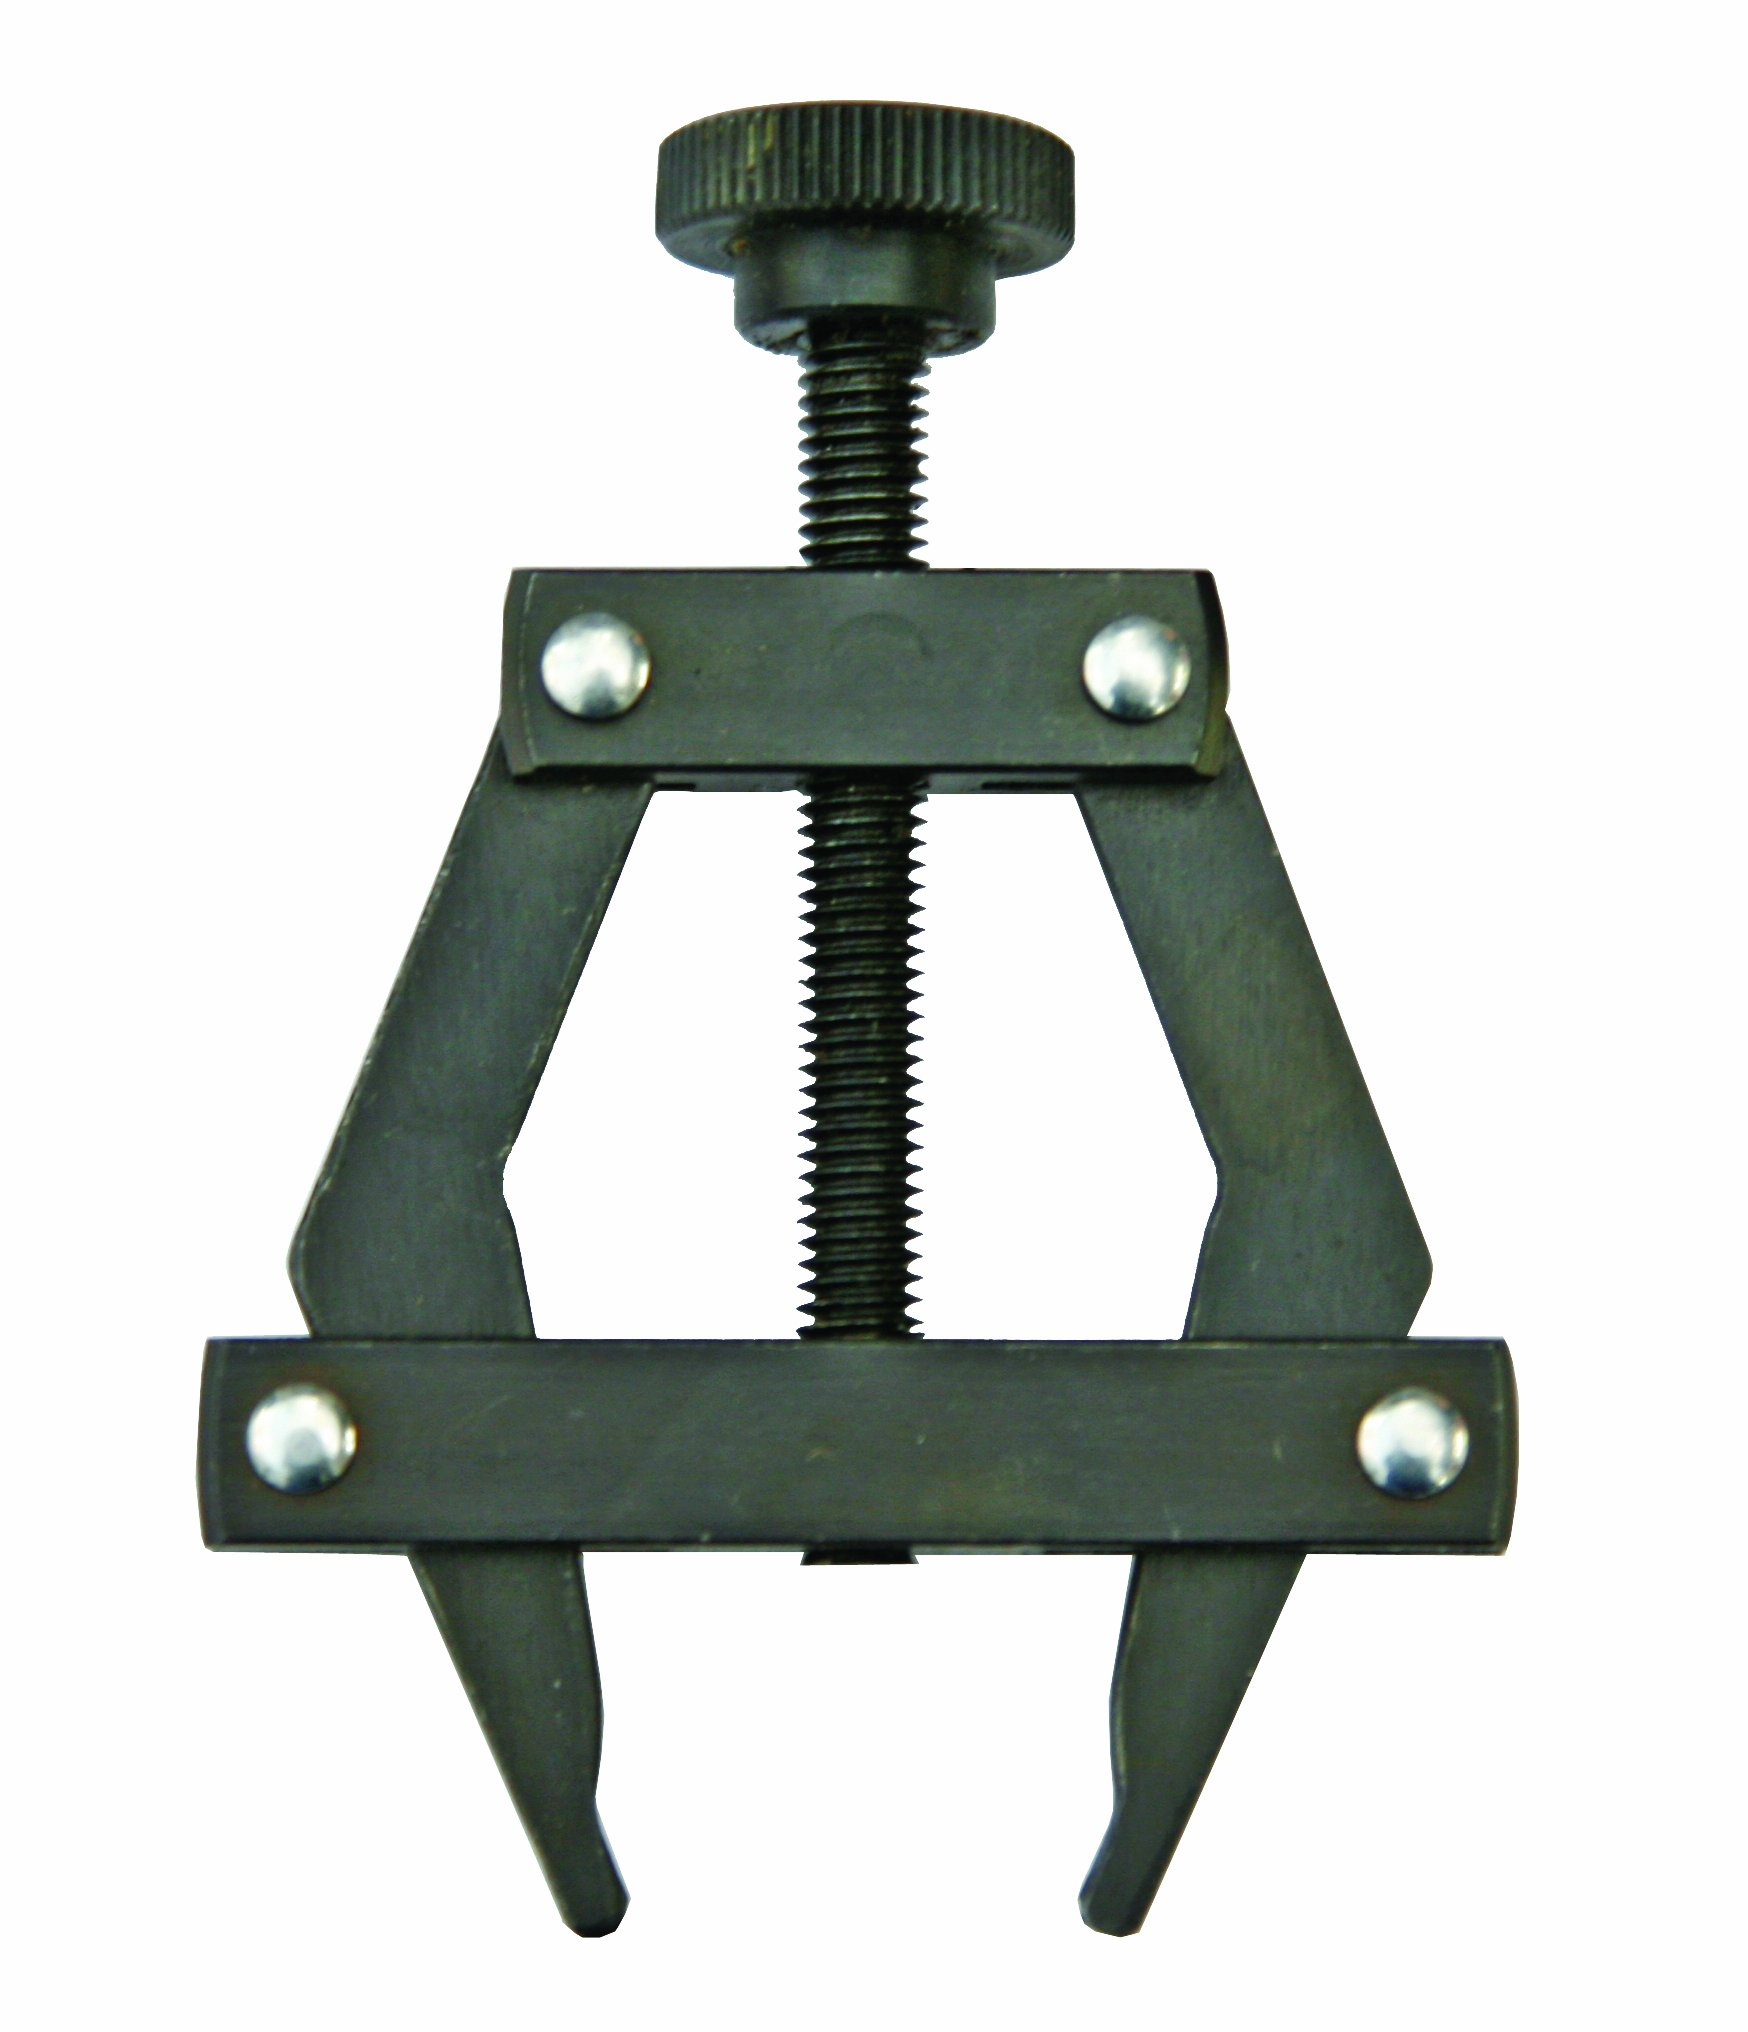 Koch 7760110 Roller Chain Holder, #25 to #60